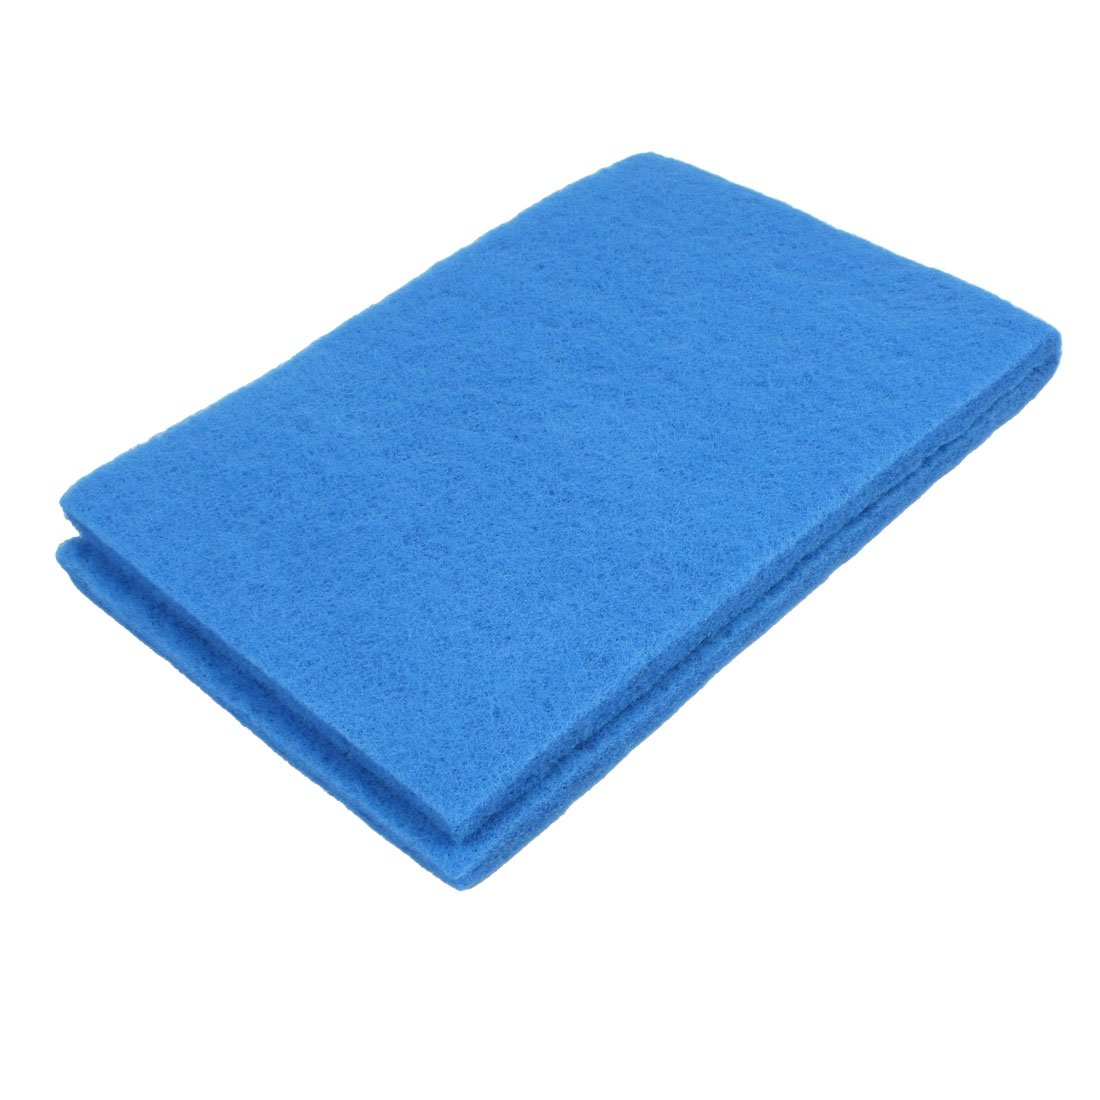 uxcell Fish Tank Blue Biochemical Filter Fiber Cotton Sponge 34.6 Long a13041500ux0679